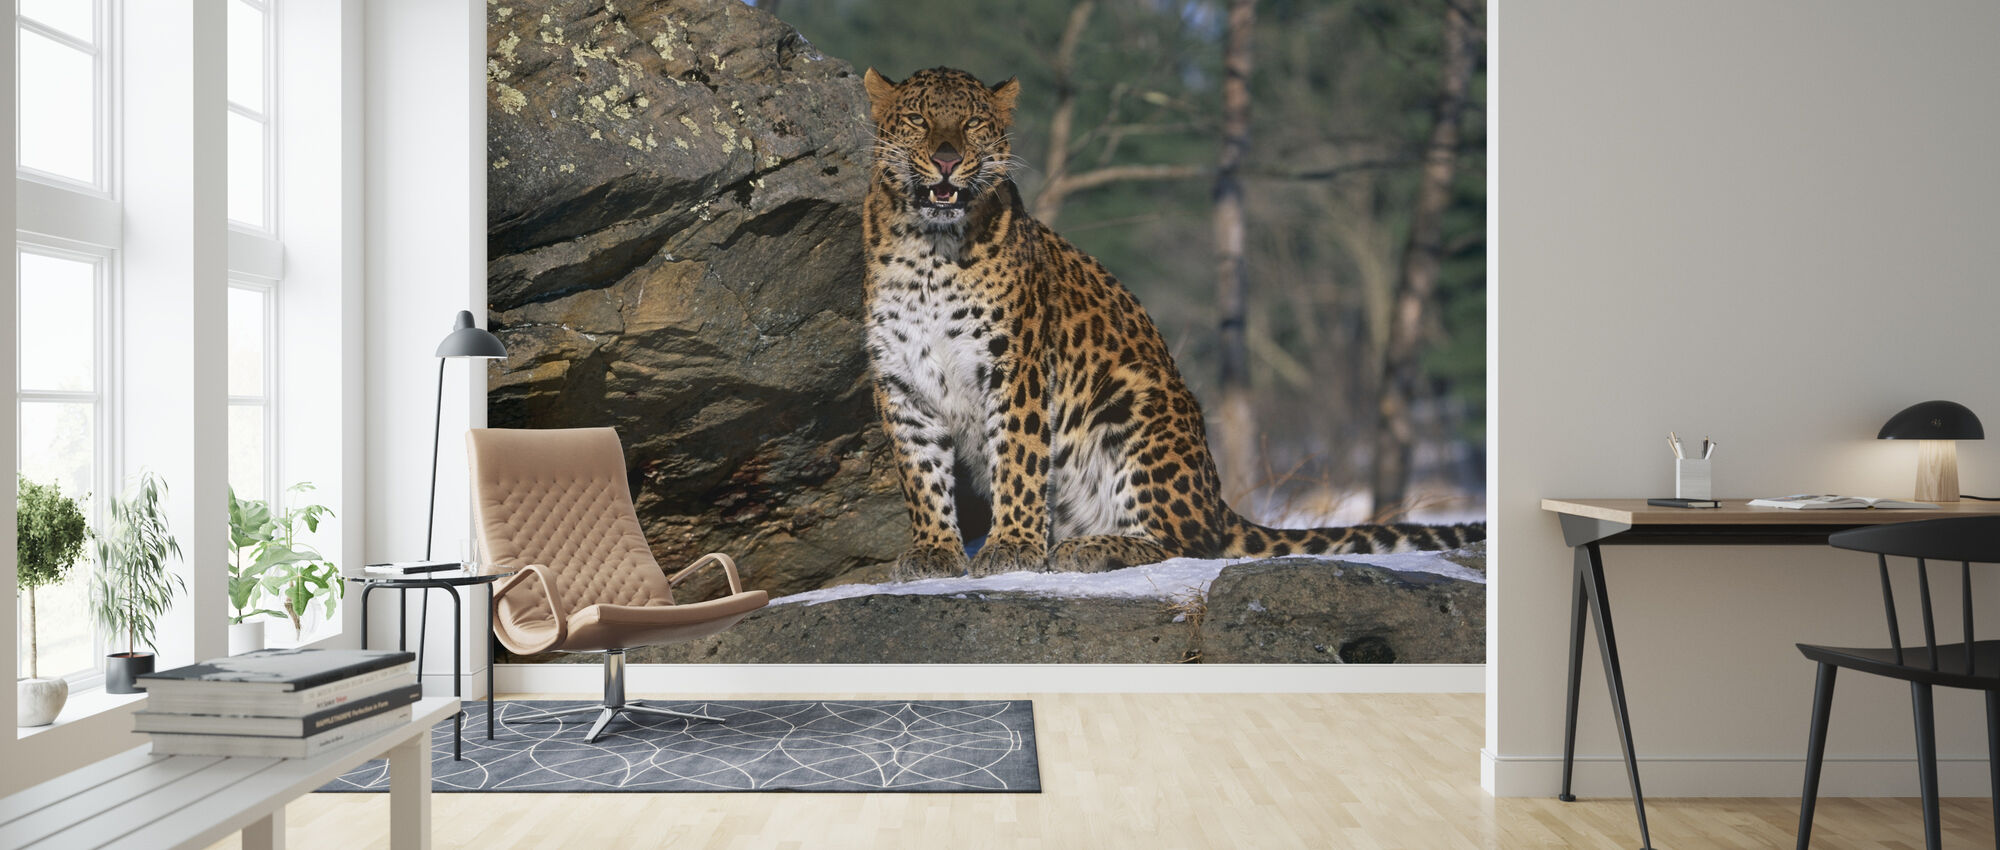 Sitting Leopard - Wallpaper - Living Room